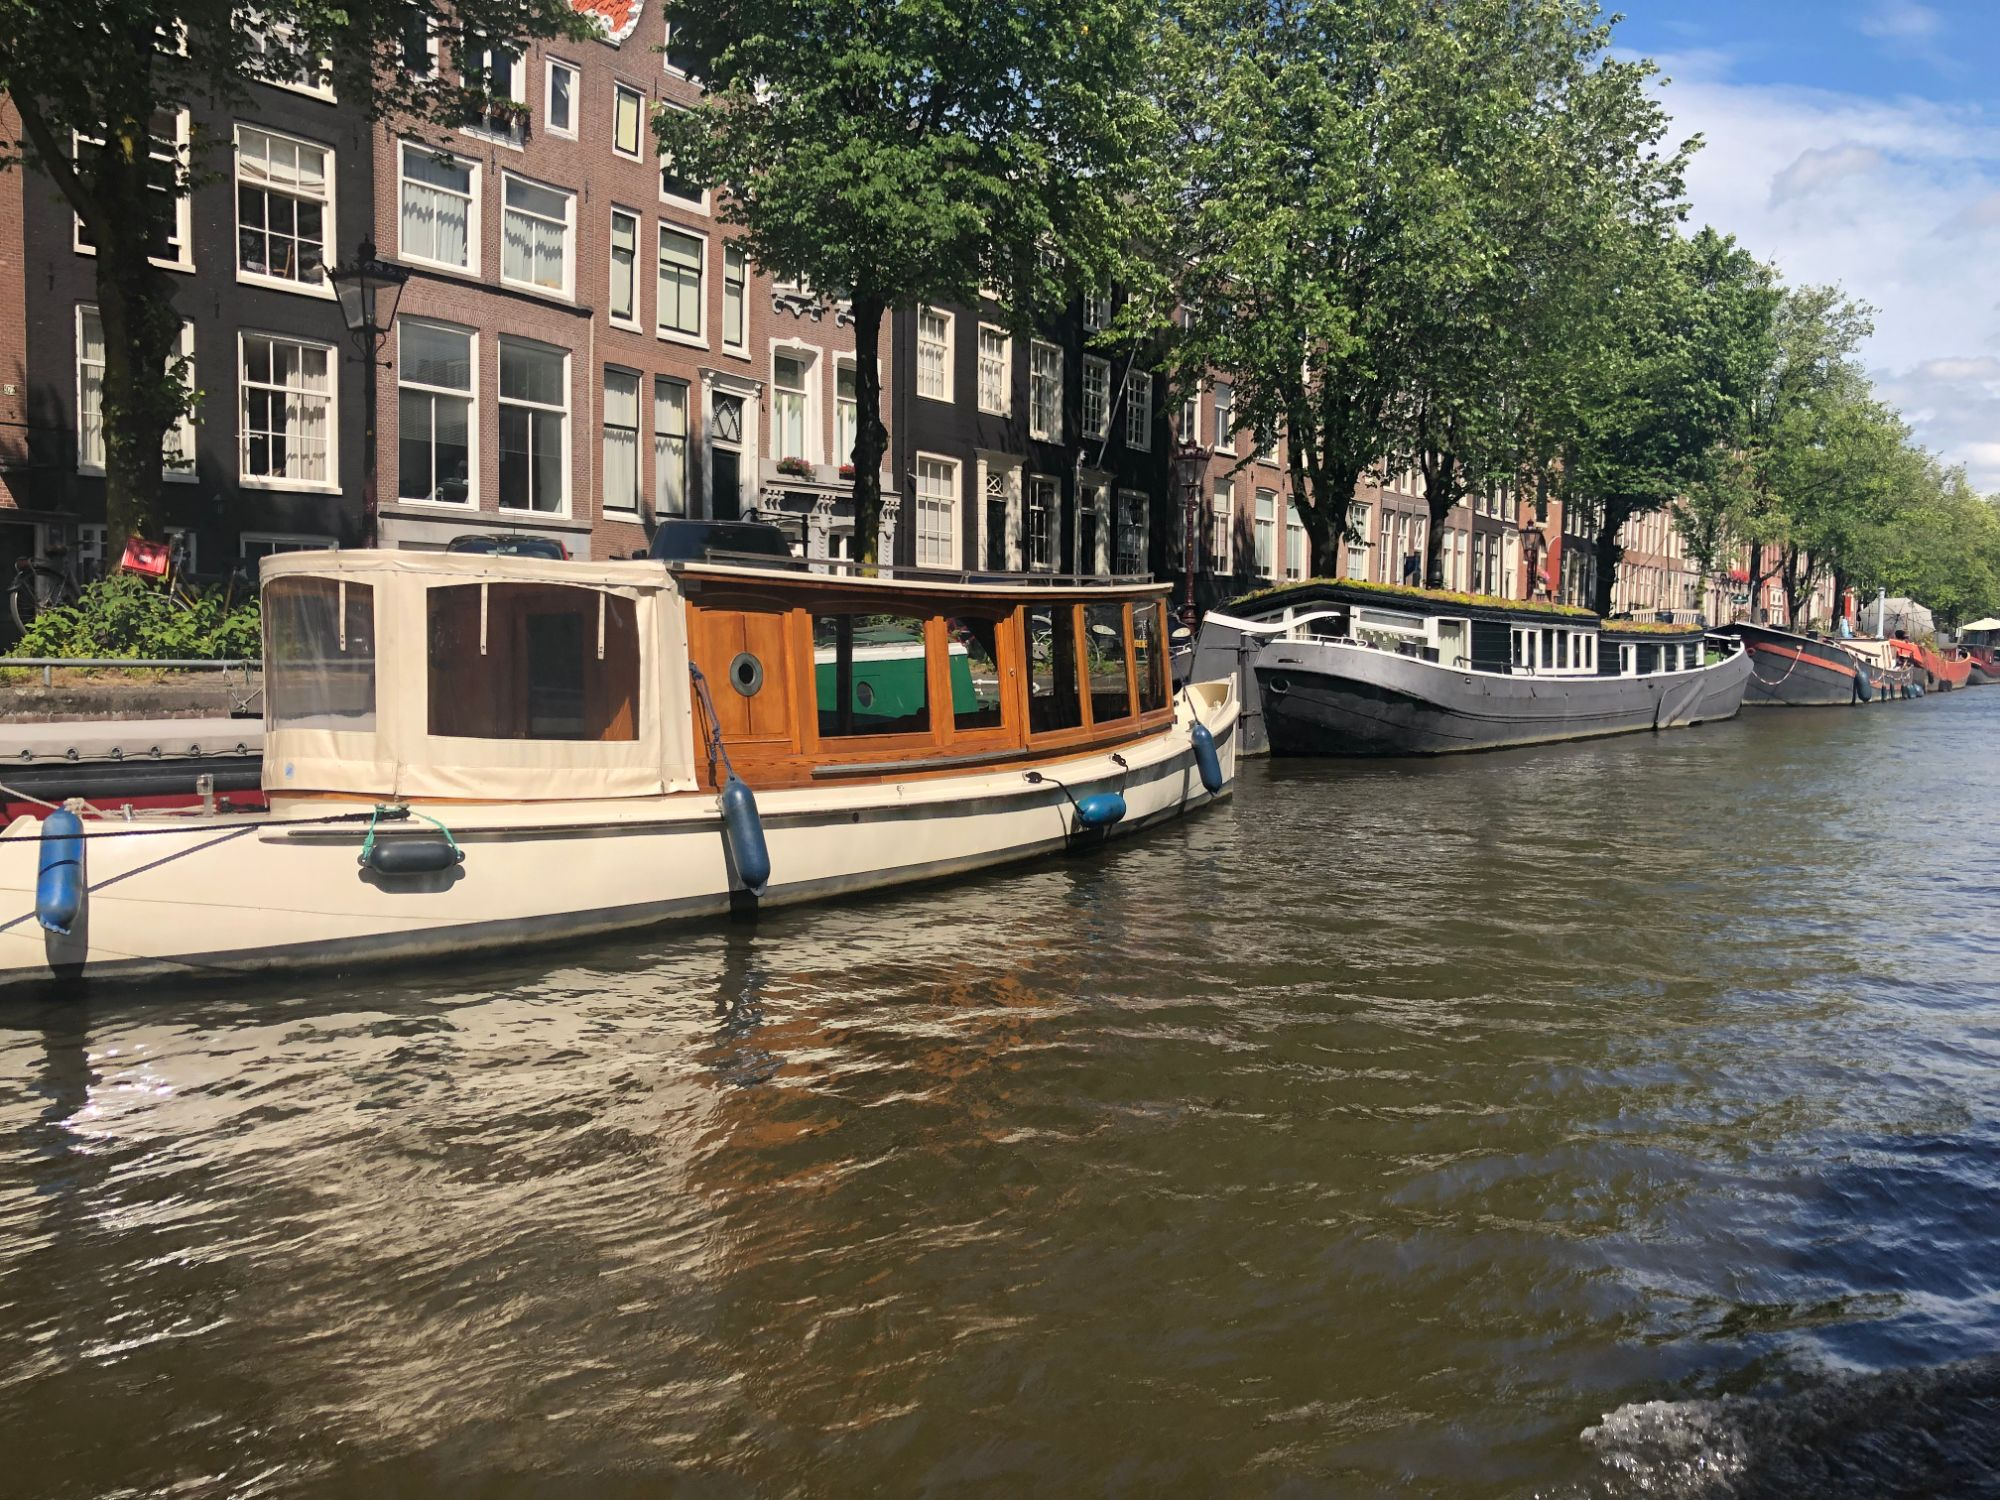 Free stock photo  Amsterdam canal boats